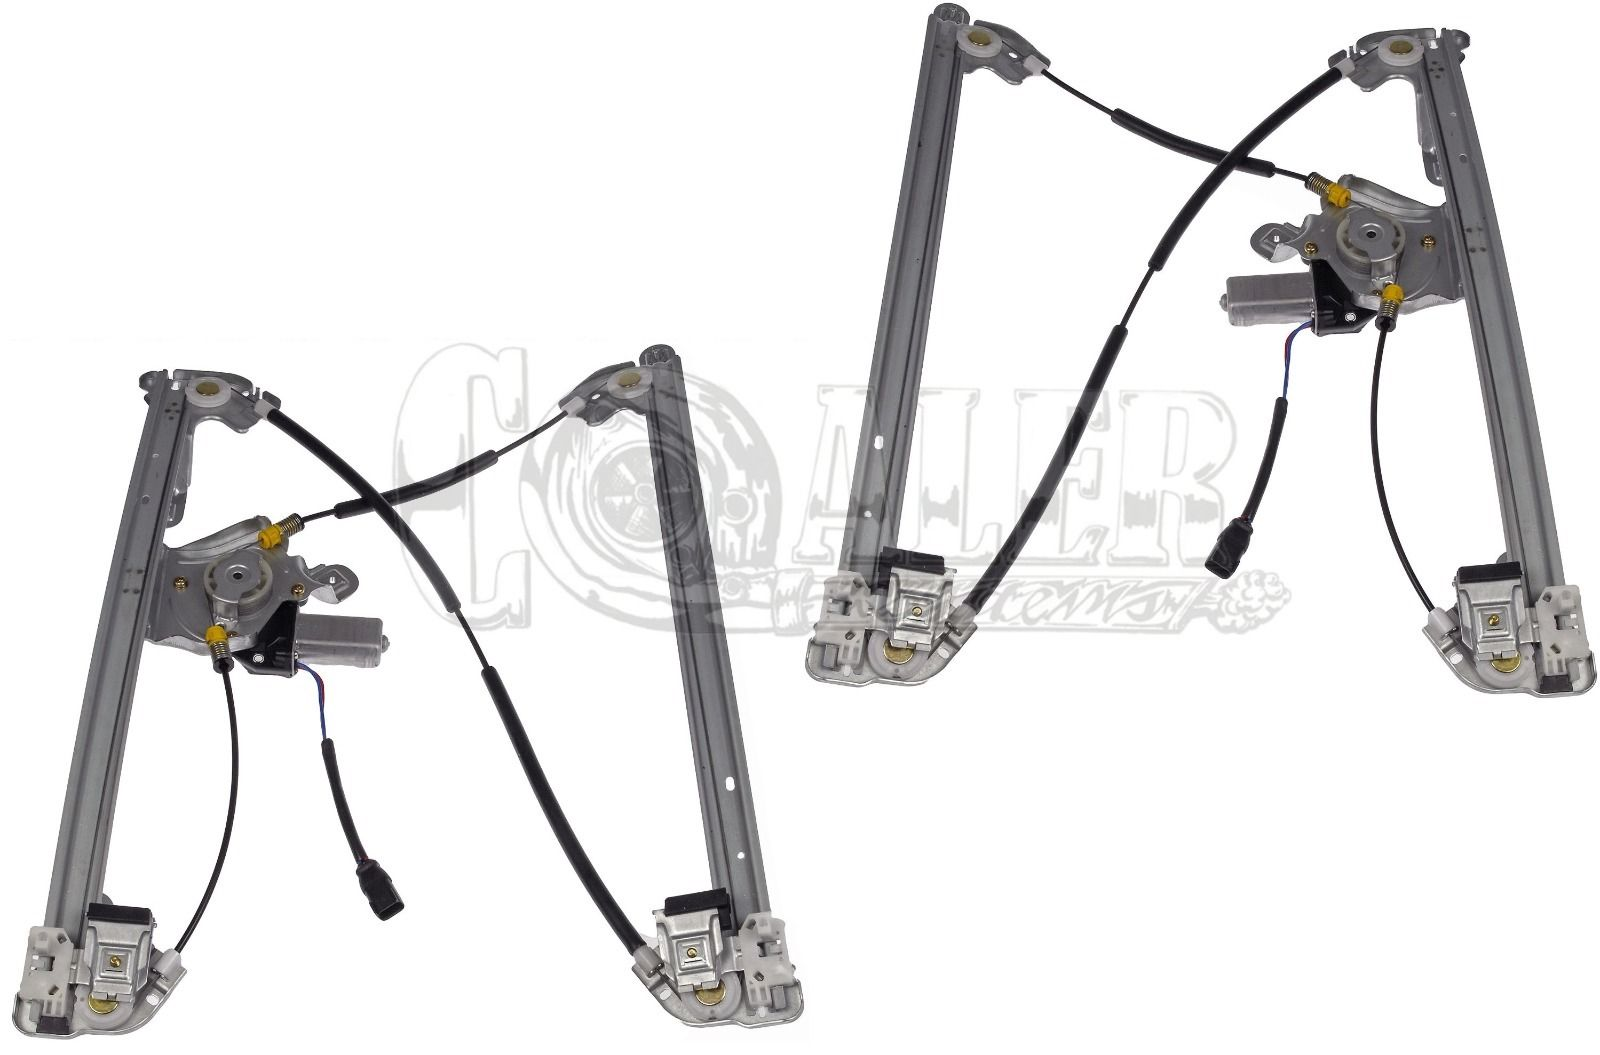 Ford F150 Window Regulator W Motor Front Set 741 431 741 430